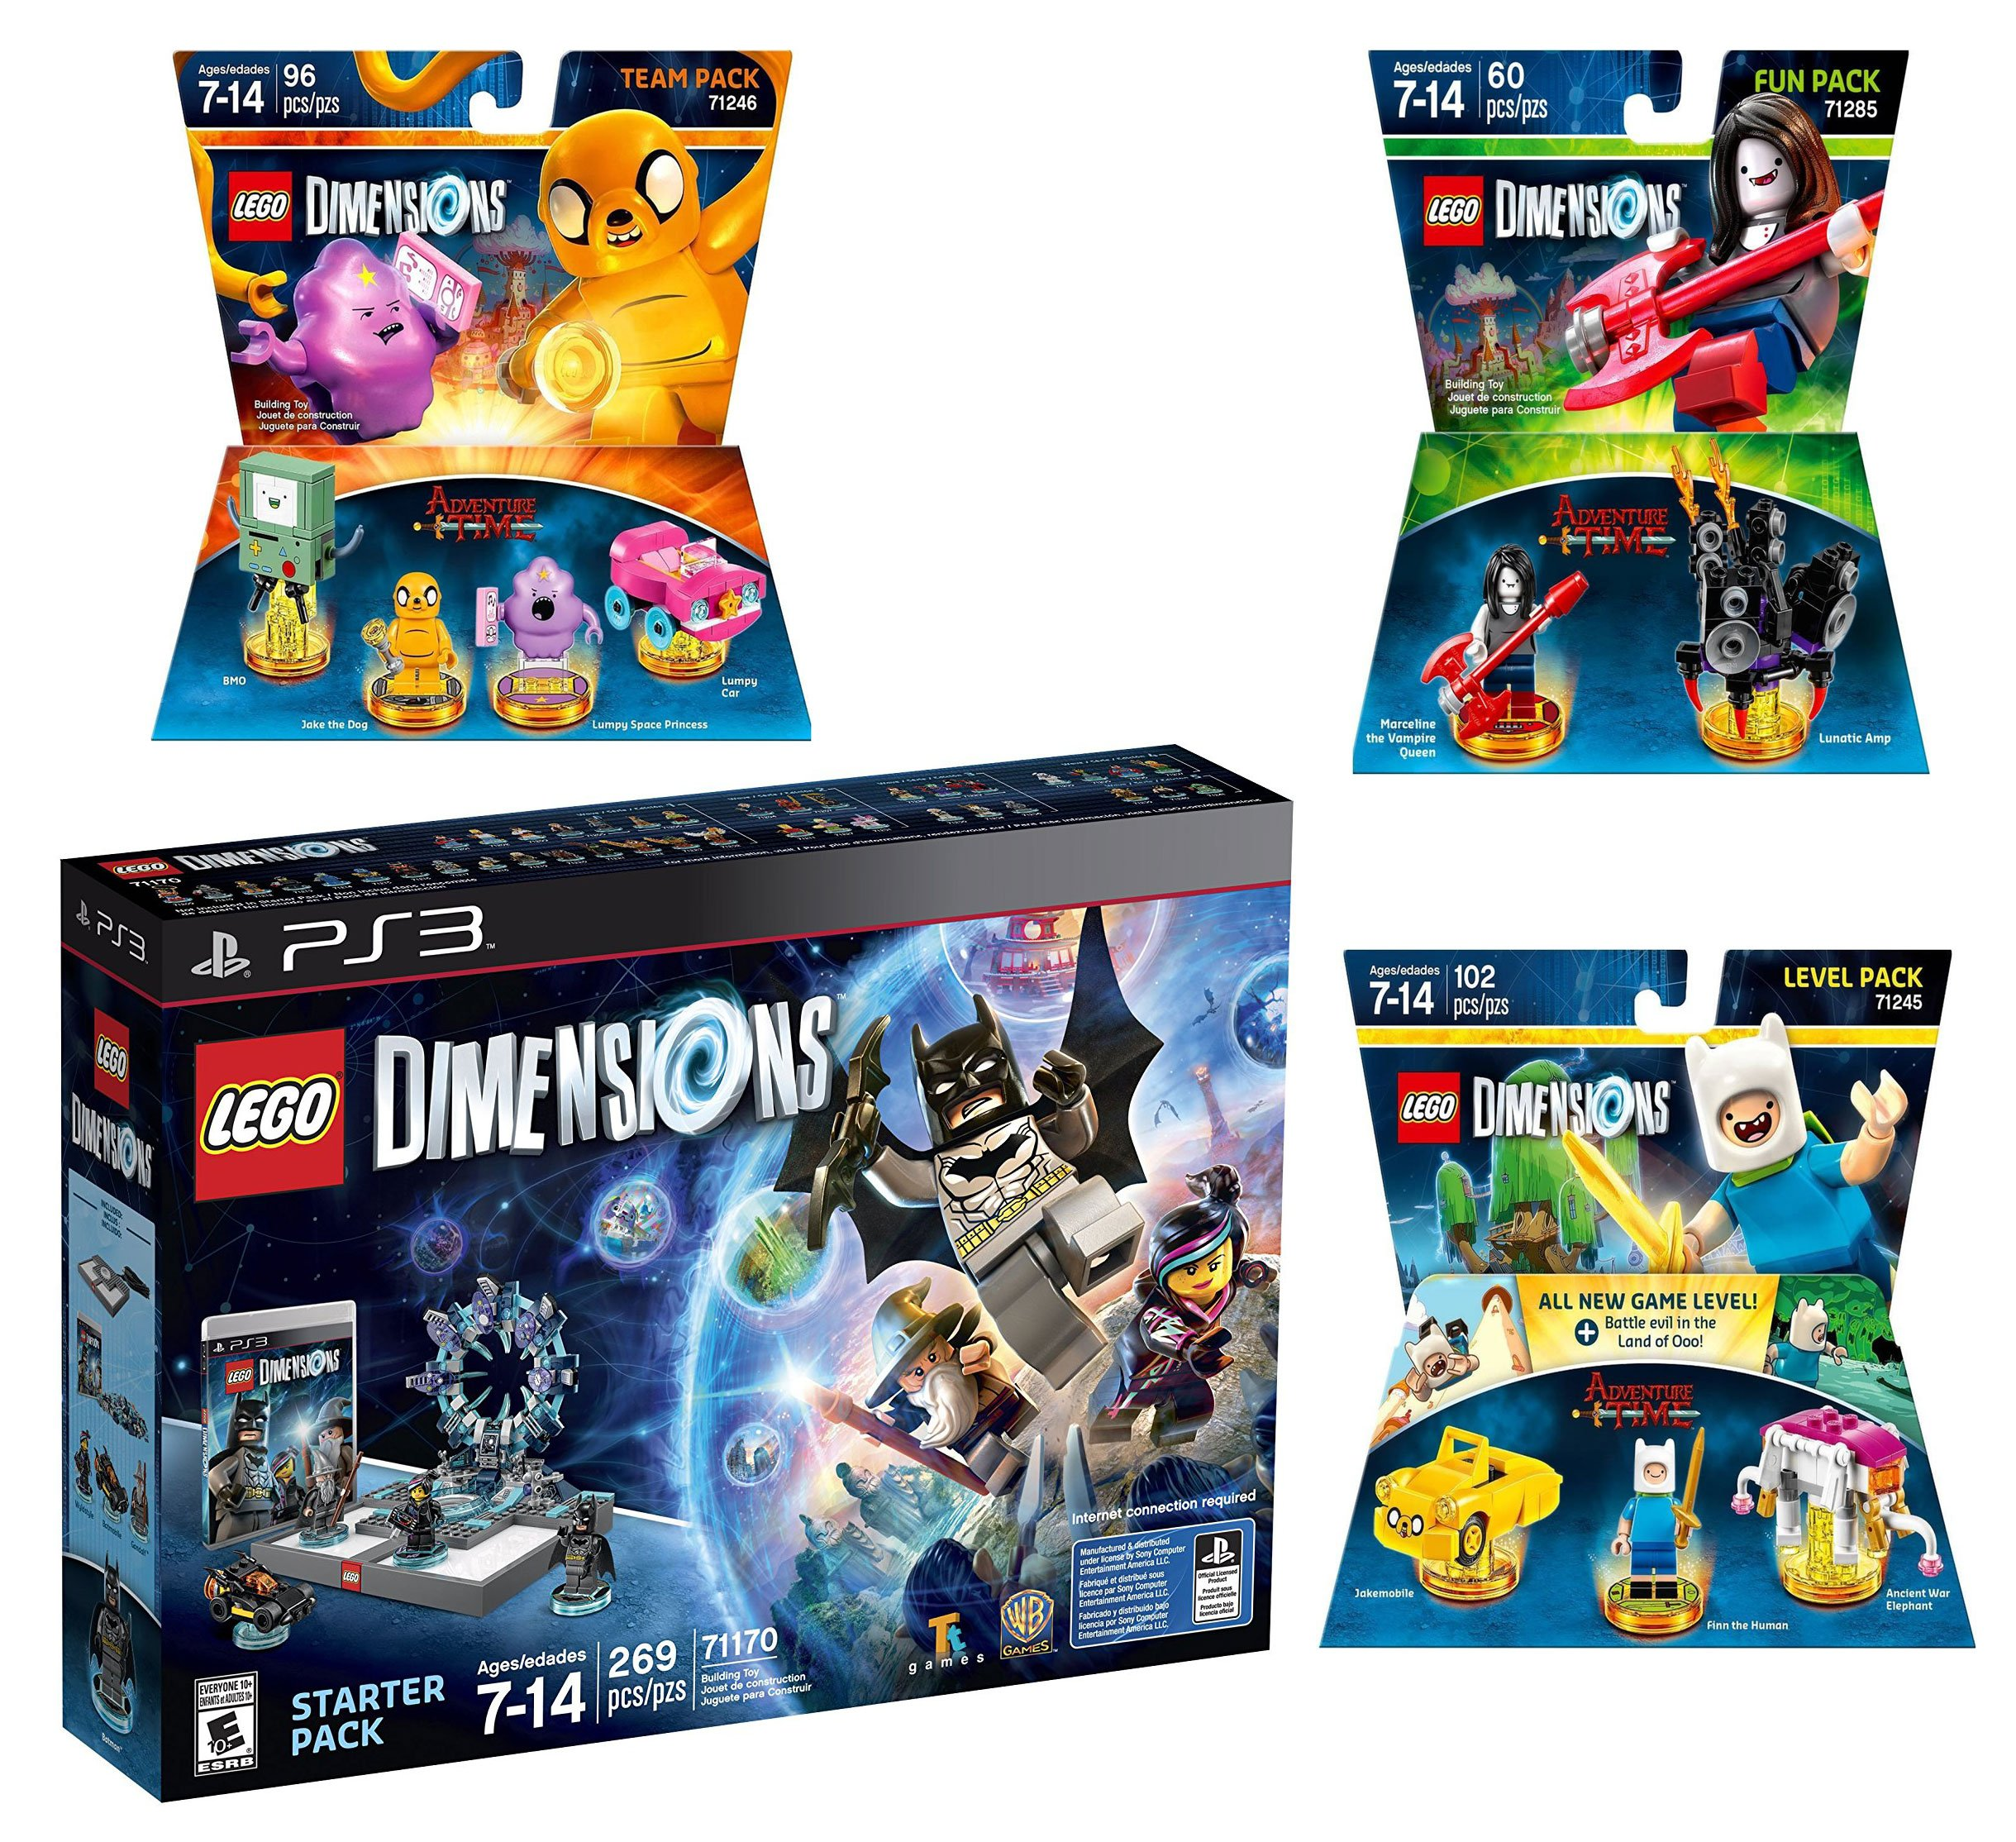 Lego Dimensions Starter Pack + Adventure Time Finn The Human Level Pack + Jake The Dog Team Pack + Marceline The Vampire Queen Fun Pack for Playstation 3 or PS3 Slim Console